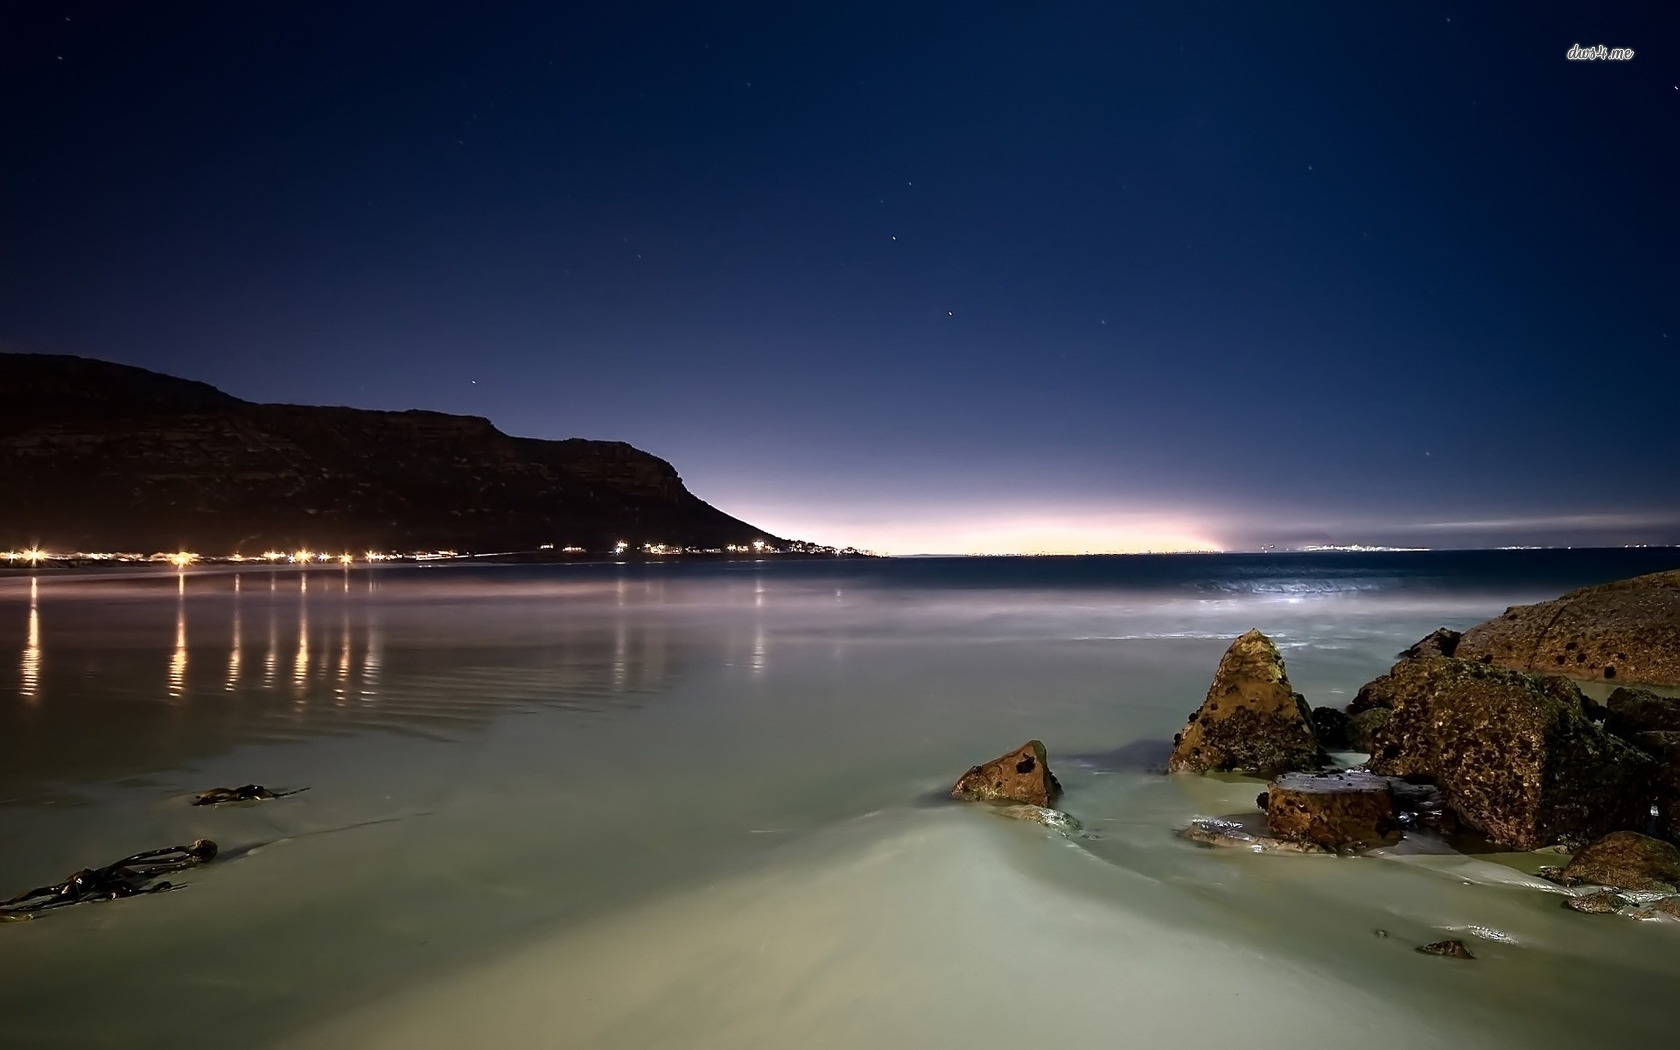 Beach at night wallpaper   Beach wallpapers   5029 1680x1050